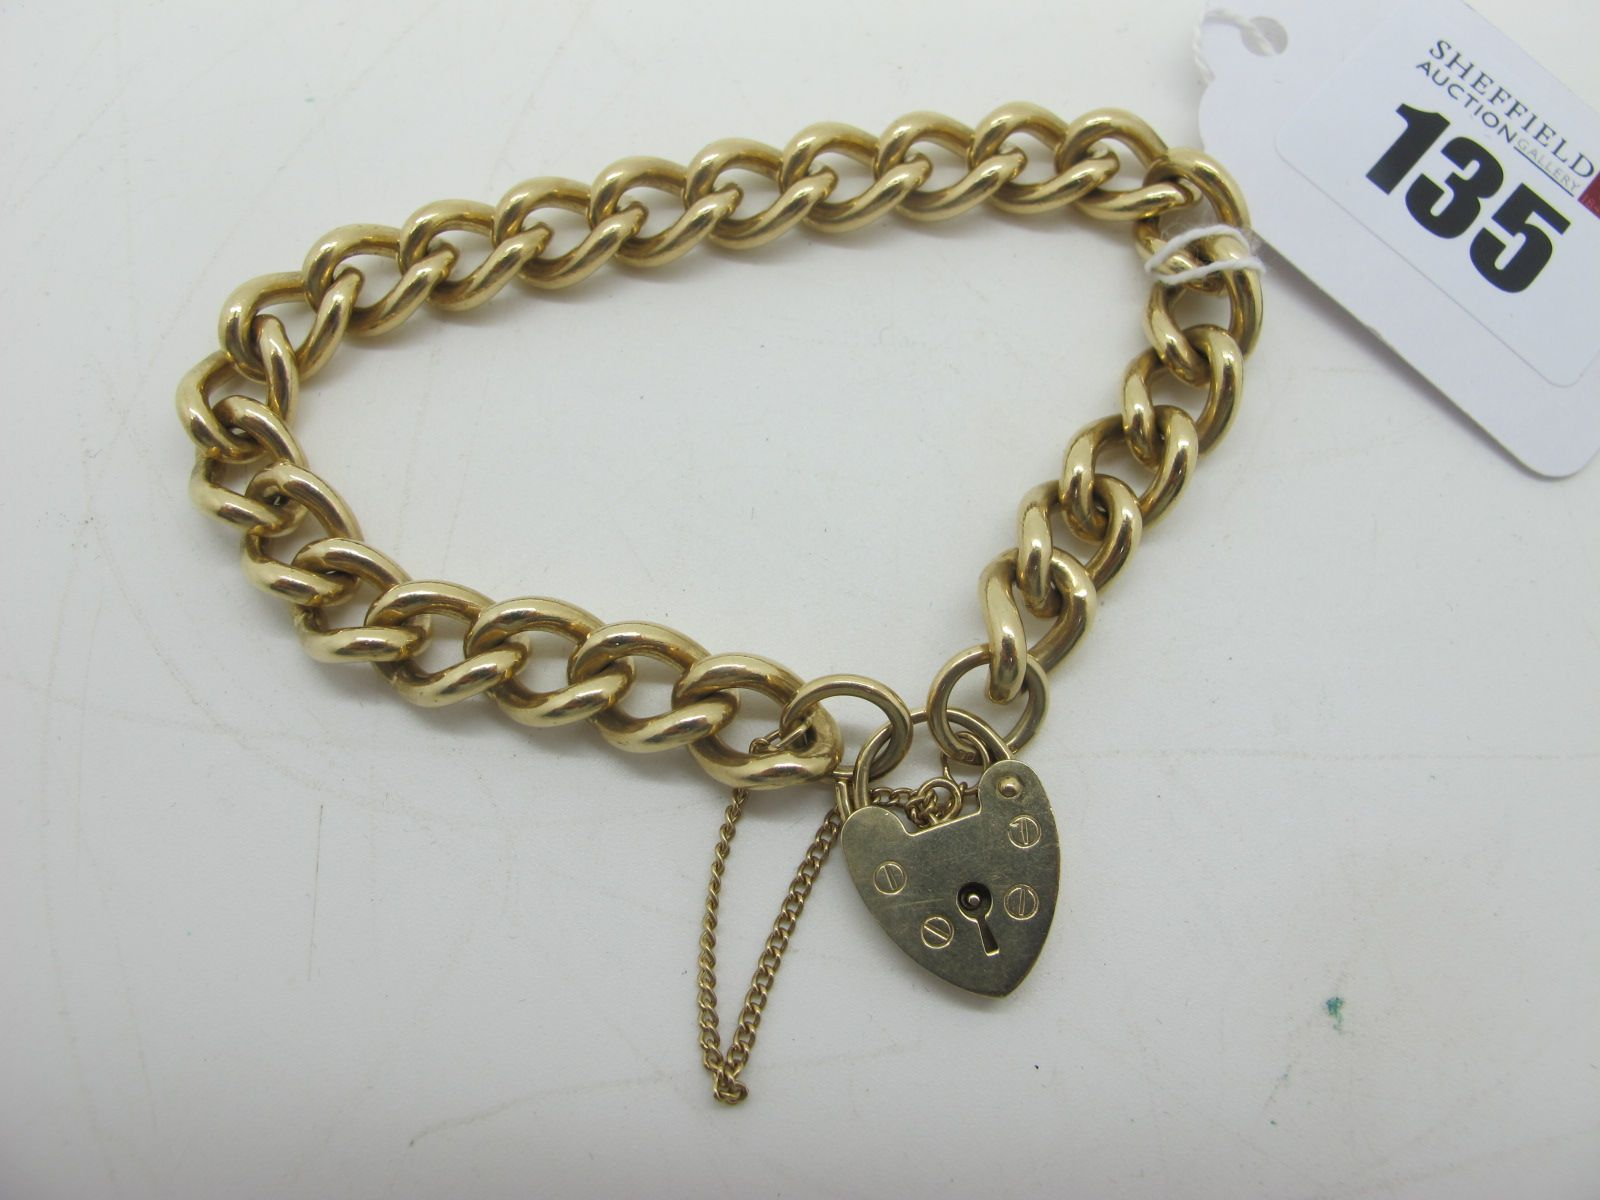 A 9ct Solid Gold Curb Link Bracelet, to heart shape padlock style clasp.